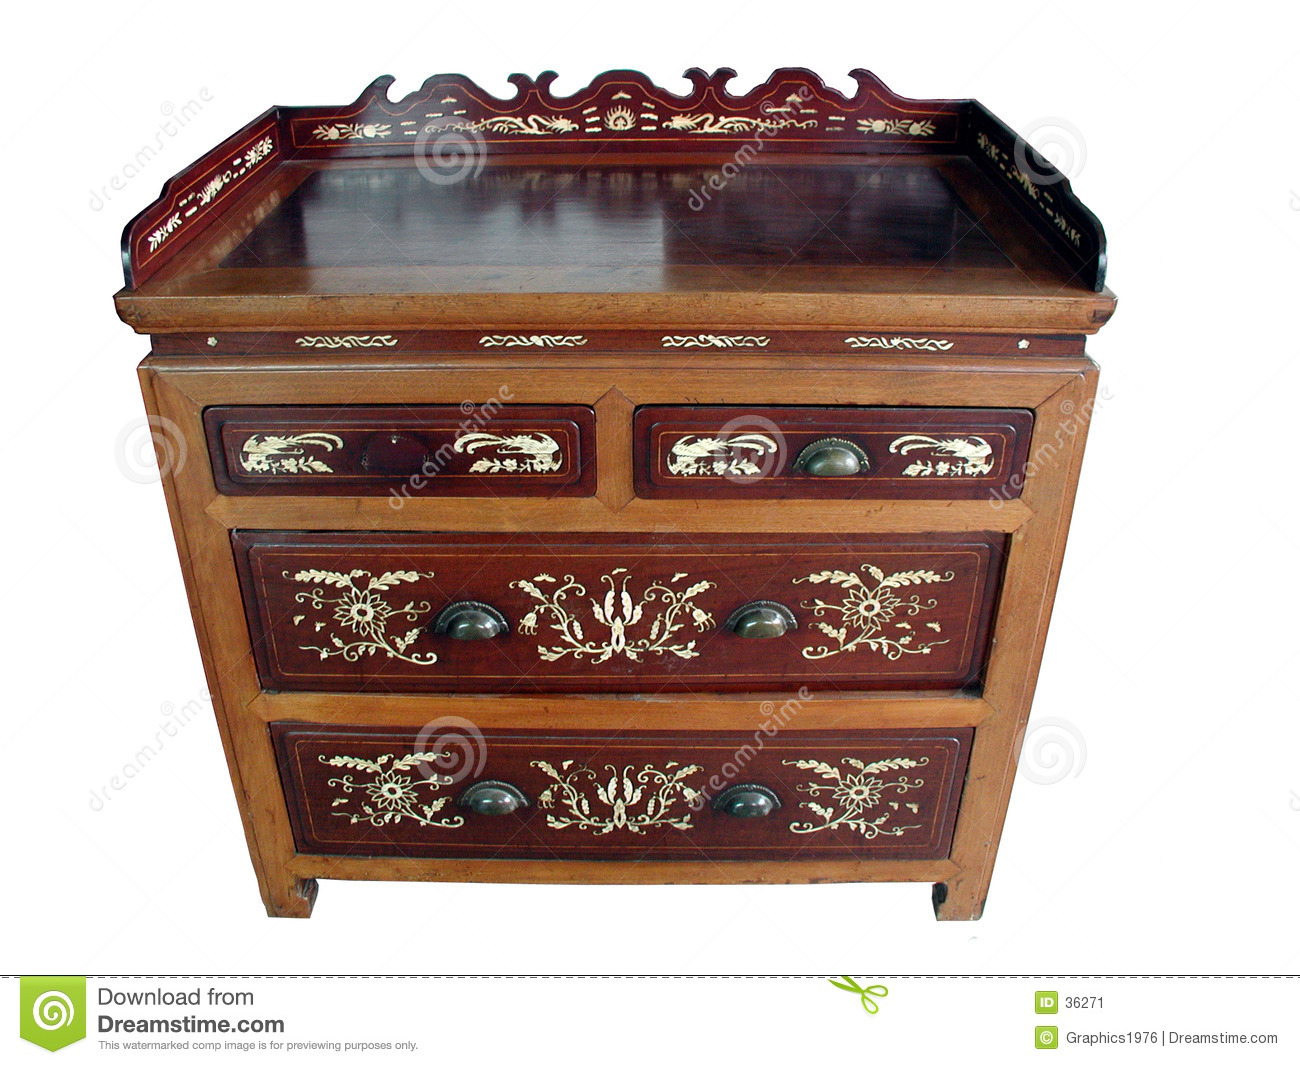 Chinese antique bone-inlay cabinet (isolated)